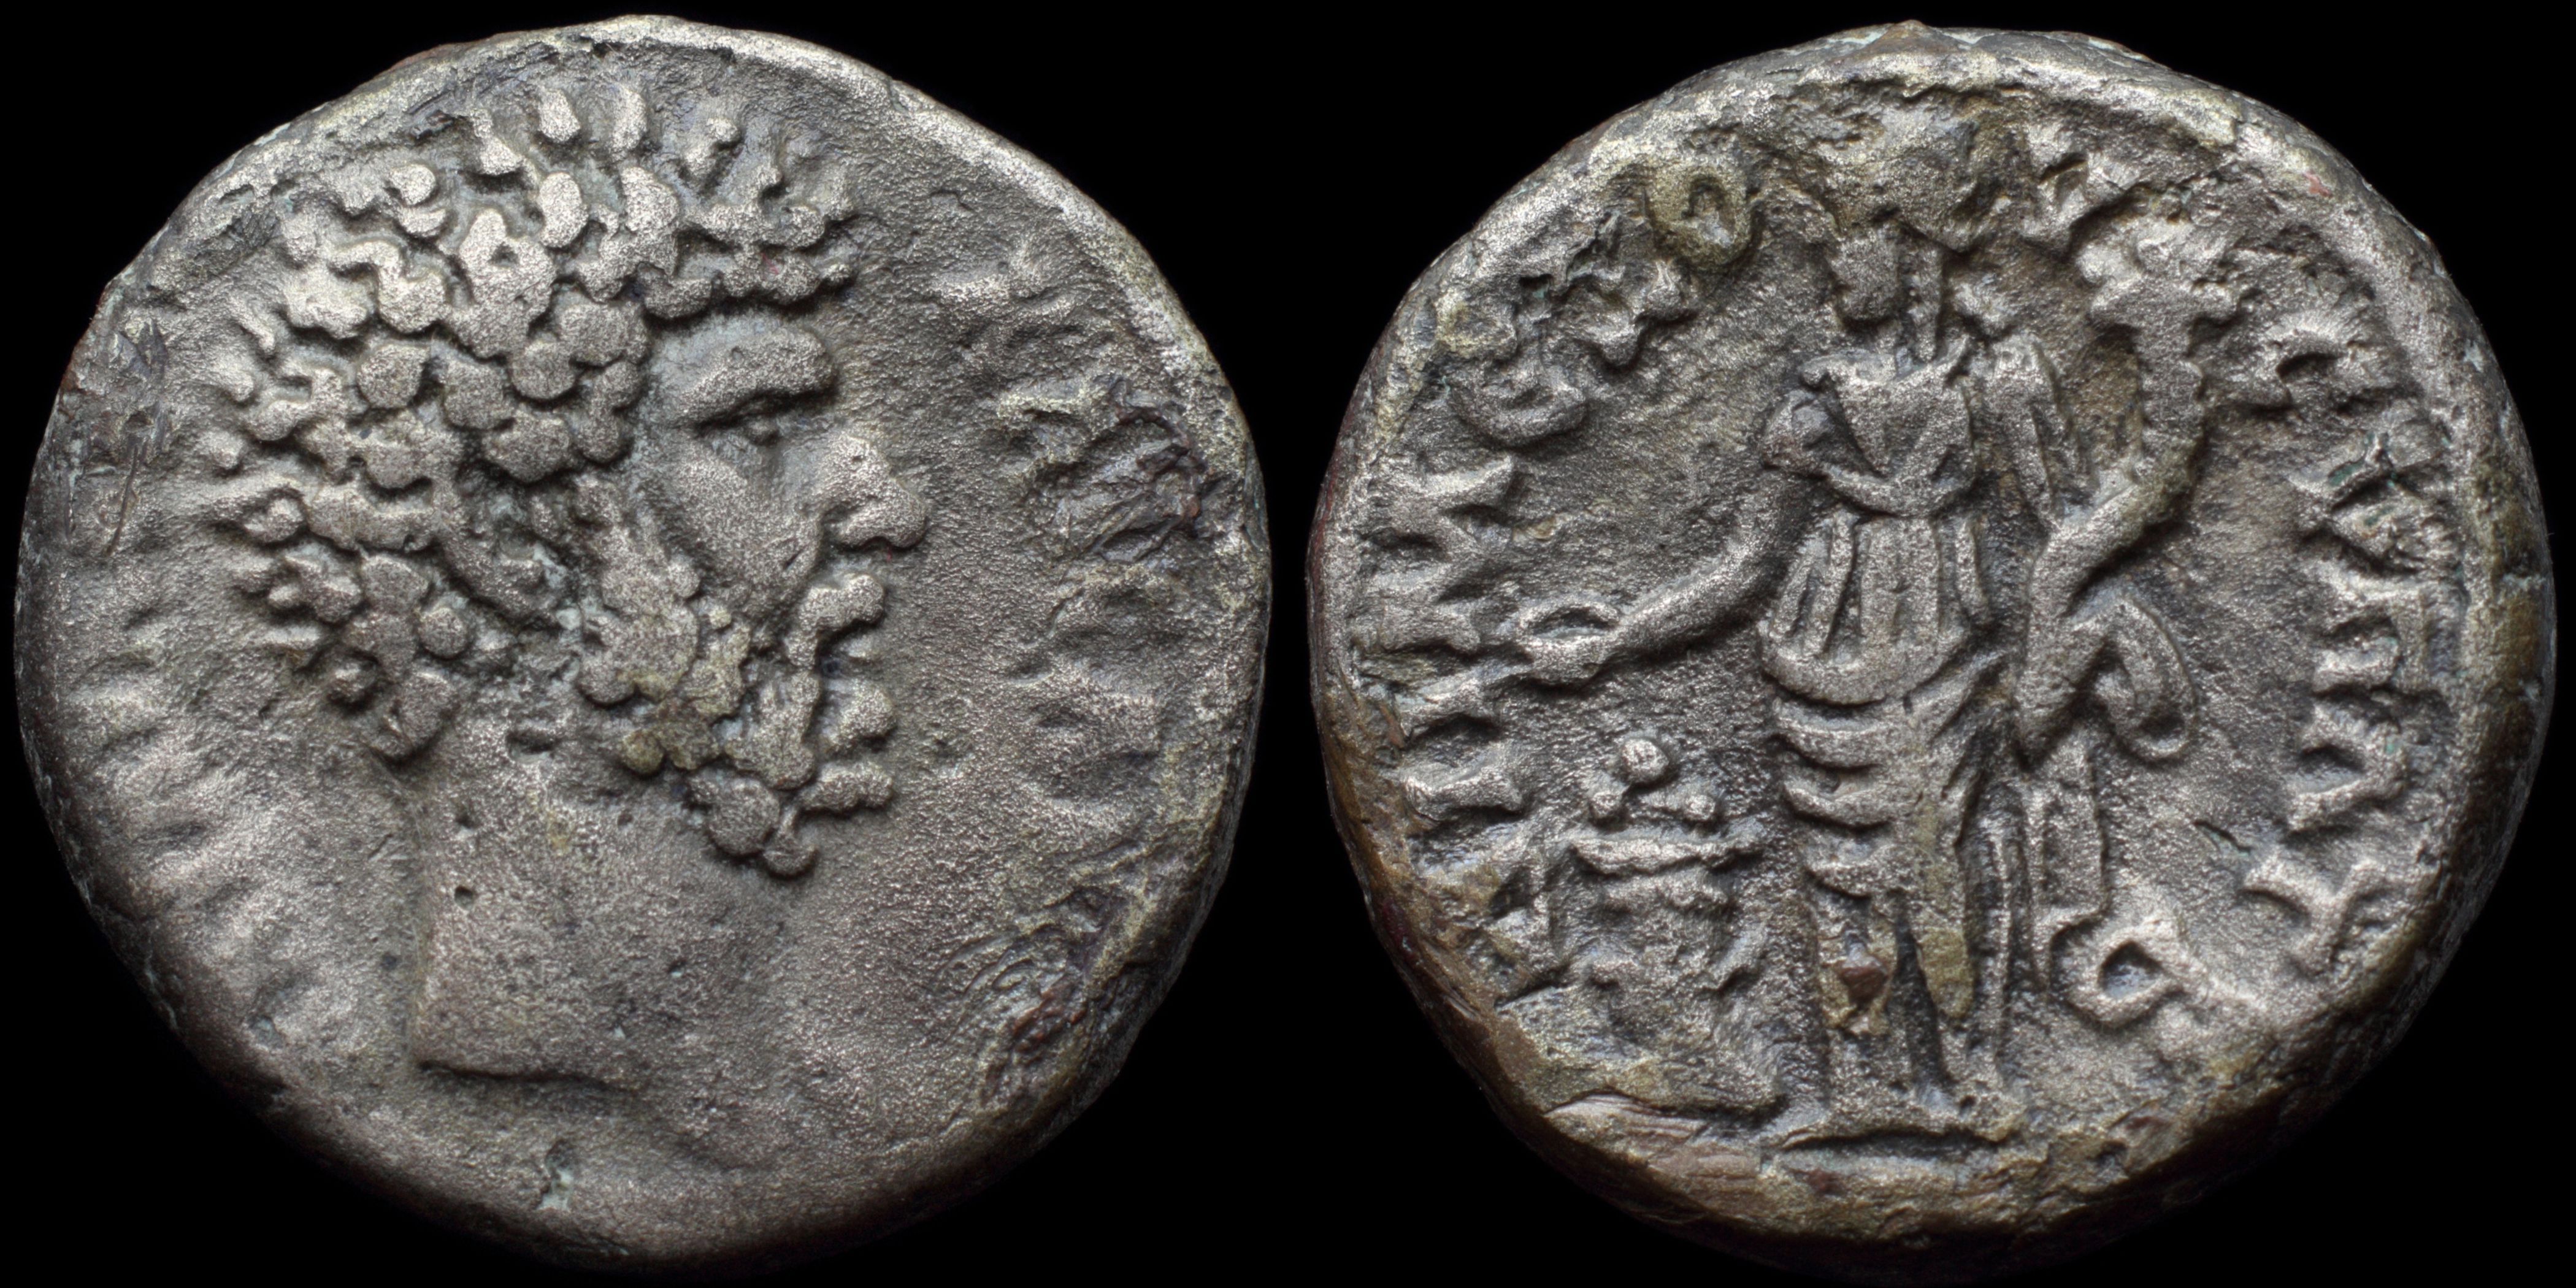 /Files/Images/Coinsite/CoinDB/1476_Aelius_Alexandria.jpg